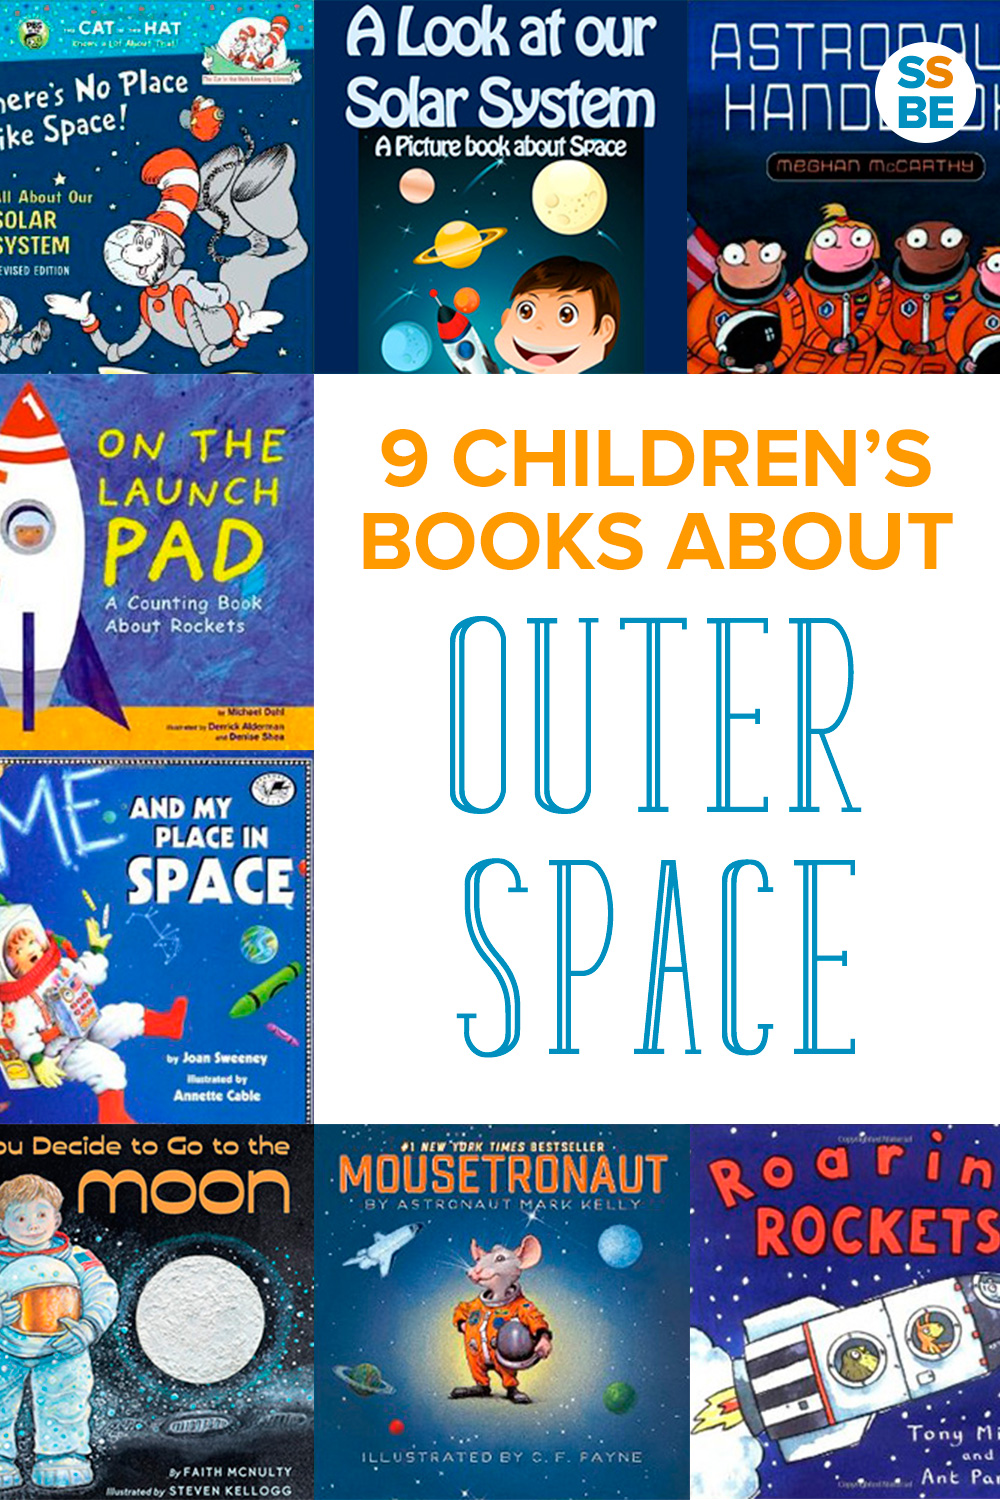 Does your child enjoy space, planets and the universe? Here are 10 children's books about outer space to read with your child.